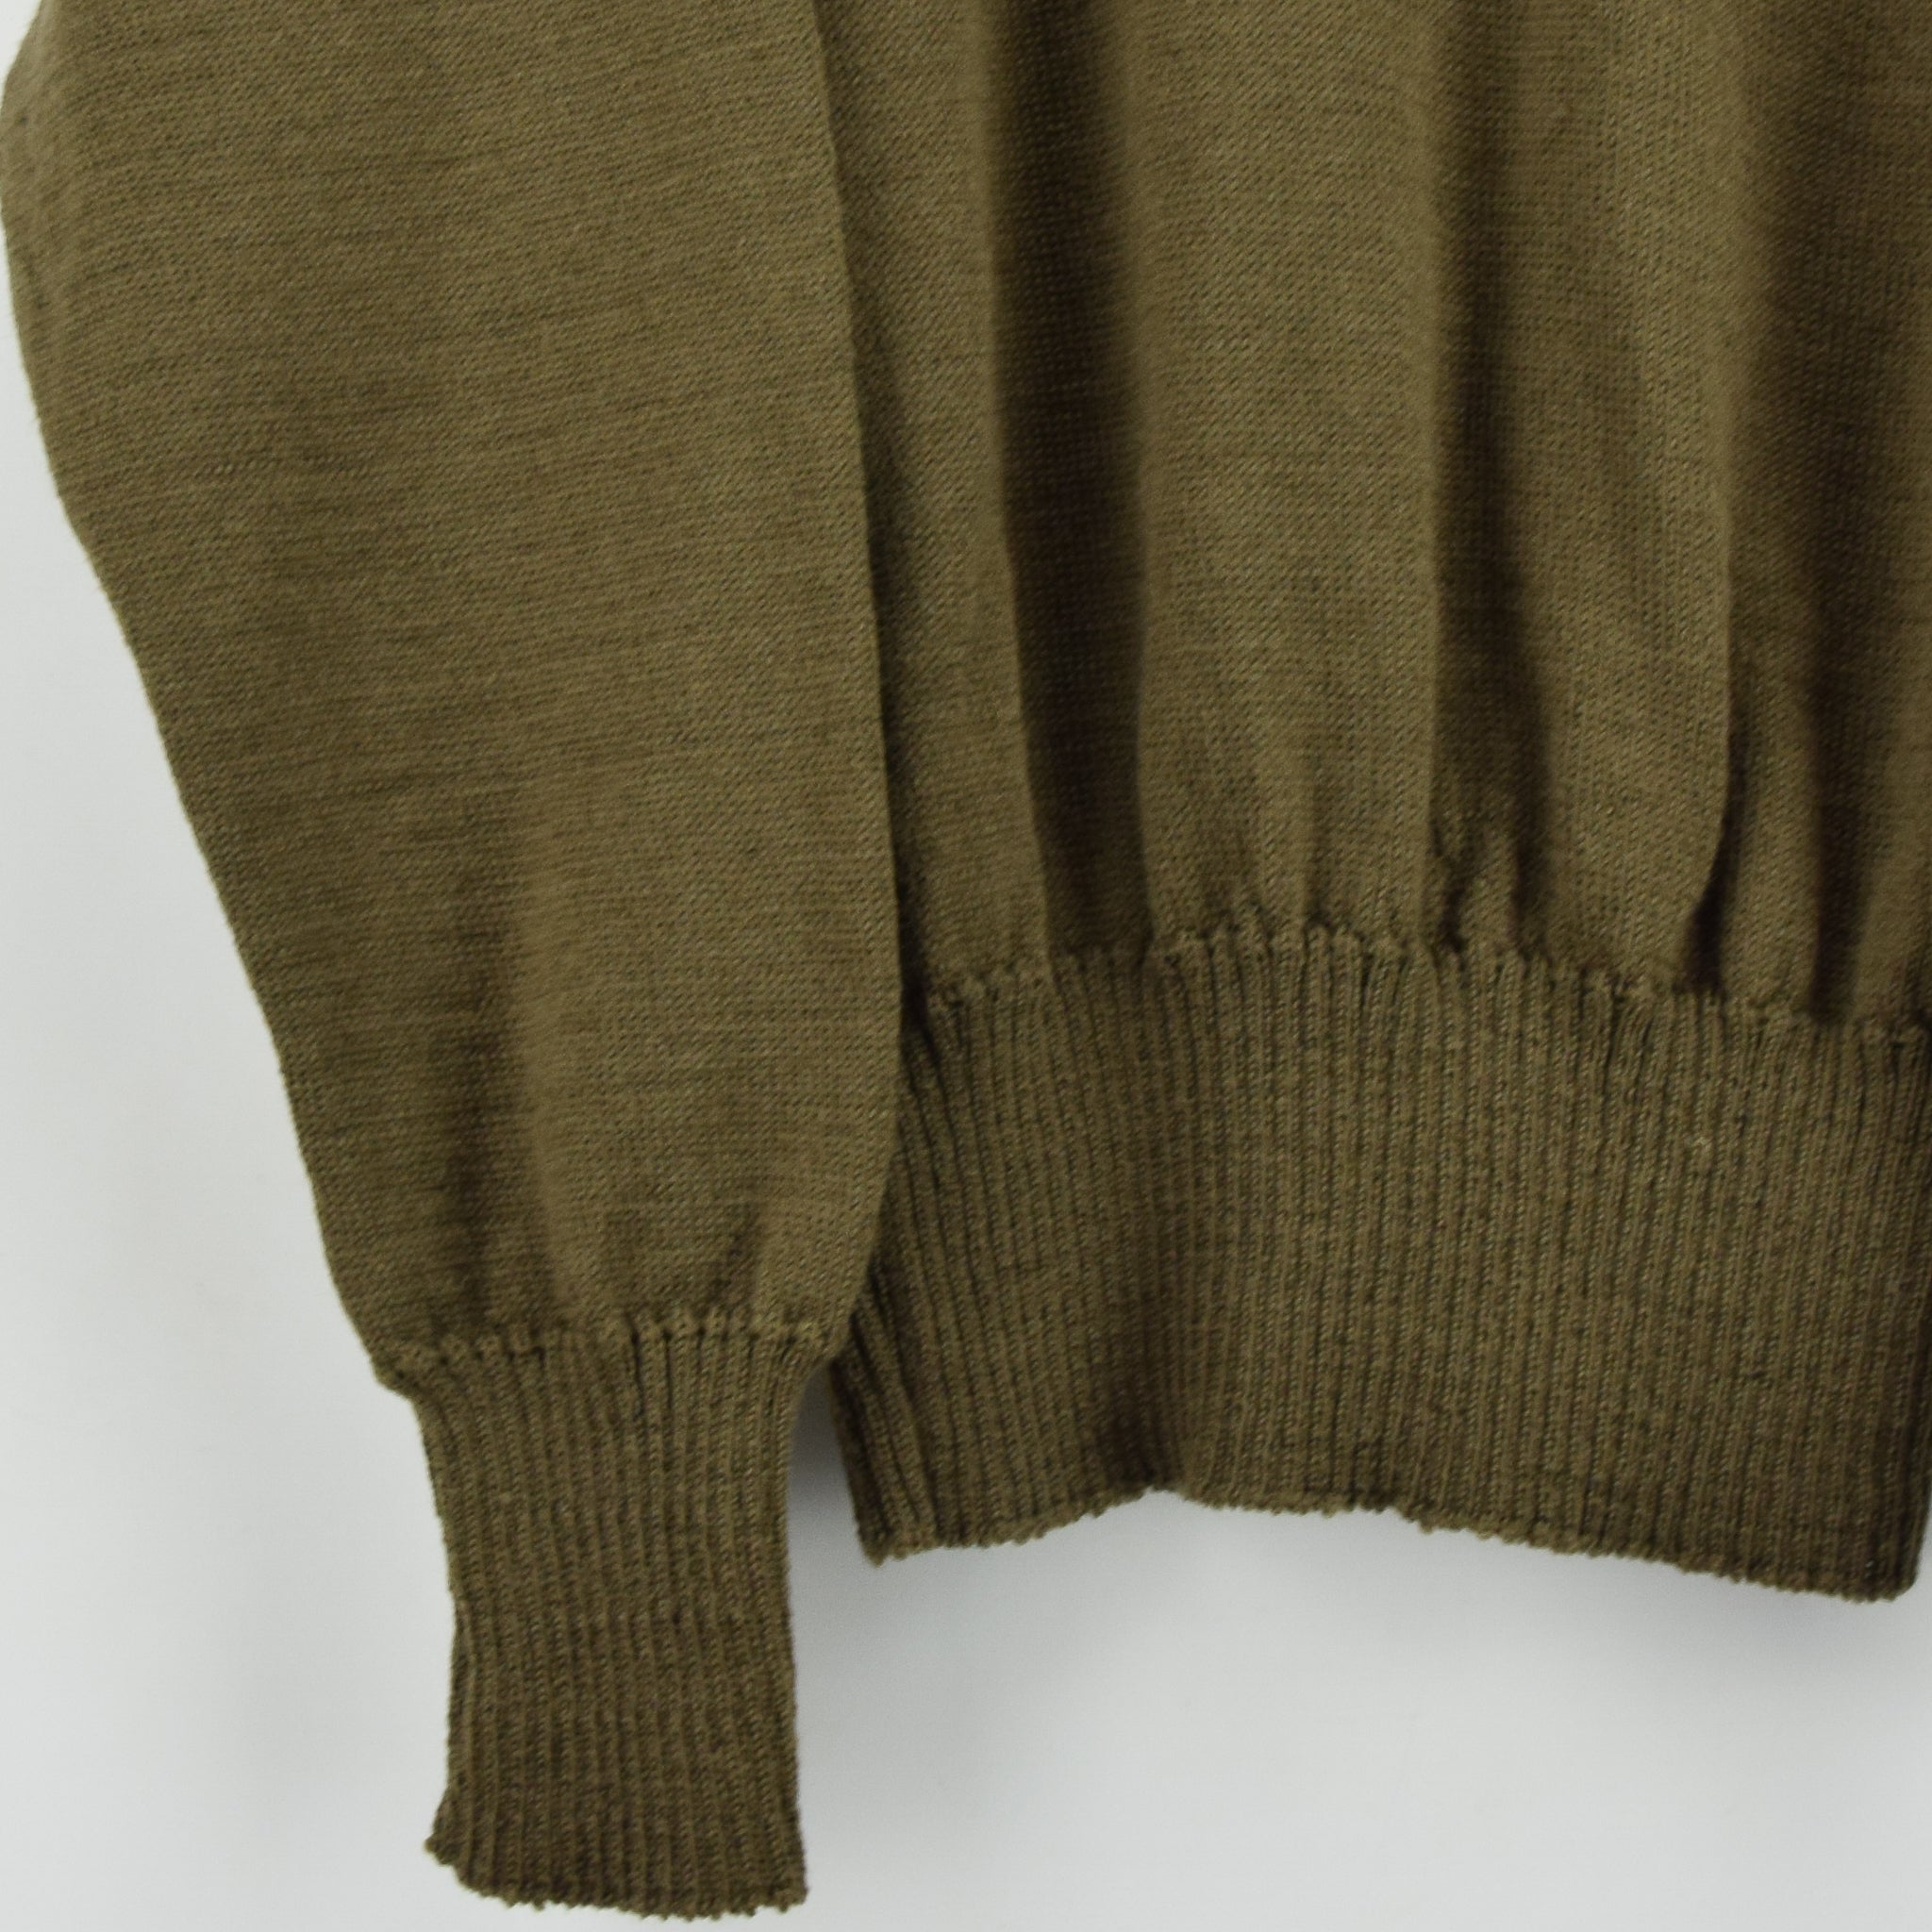 Vintage 60s US Army Military Sweater Olive Wool USA Made Button Pullover M front hem